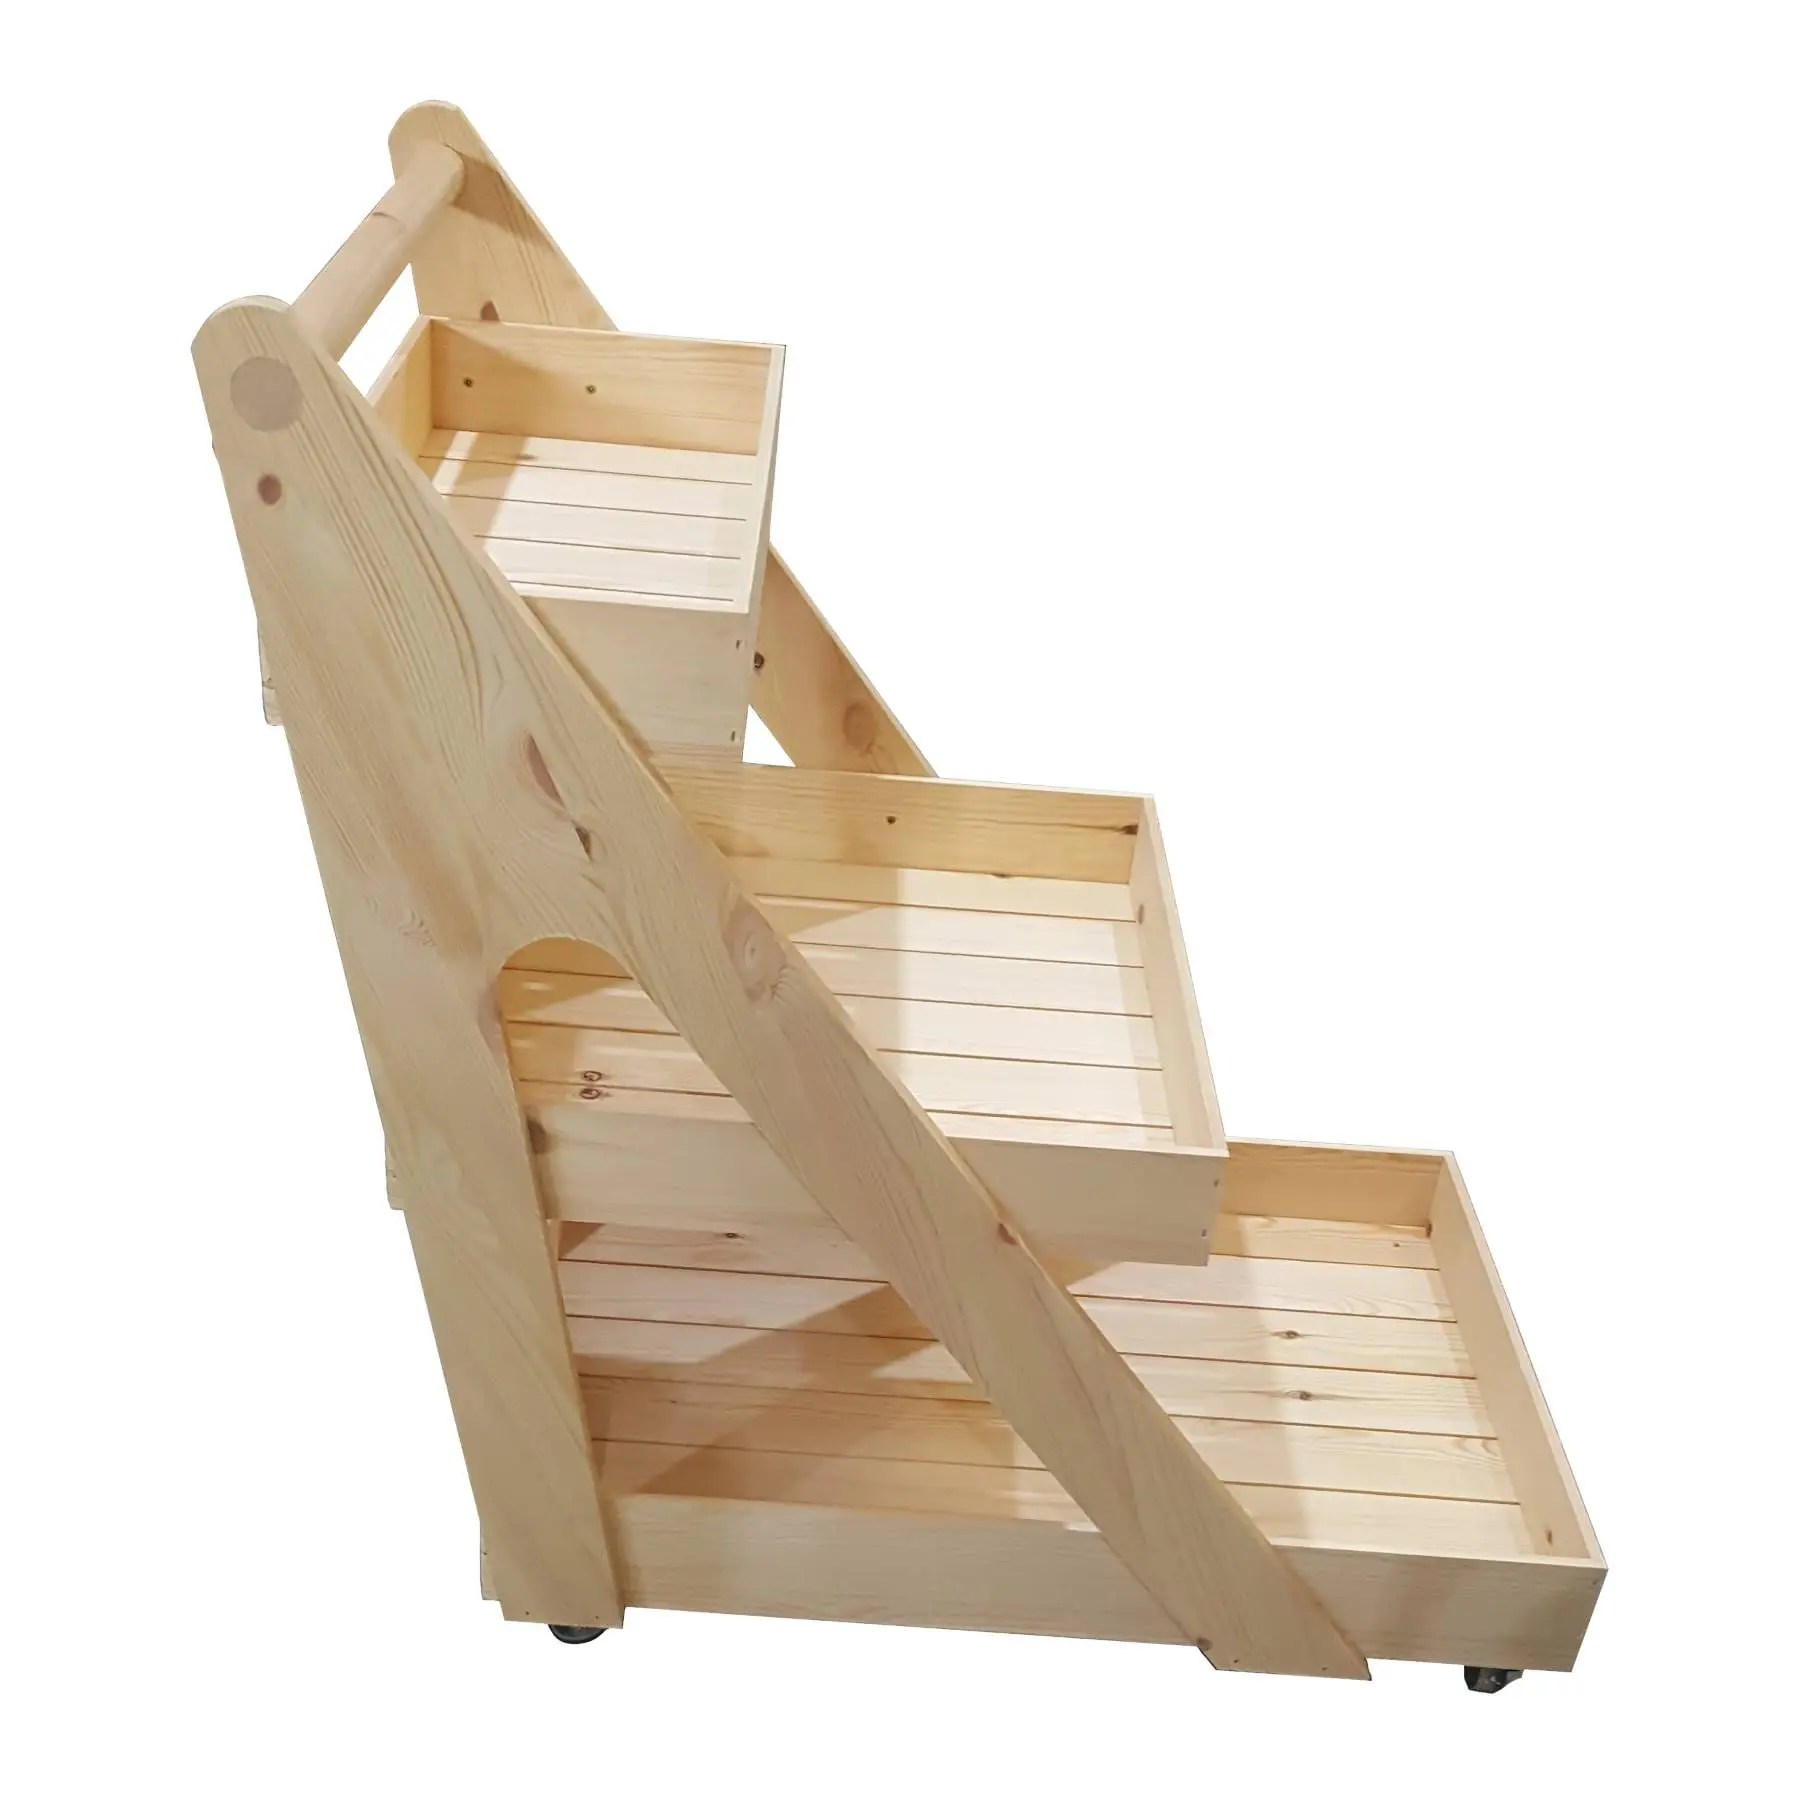 A Frame Trolley Rustic 3 Tier A Frame Trolley On Casters Incredibly Versatile